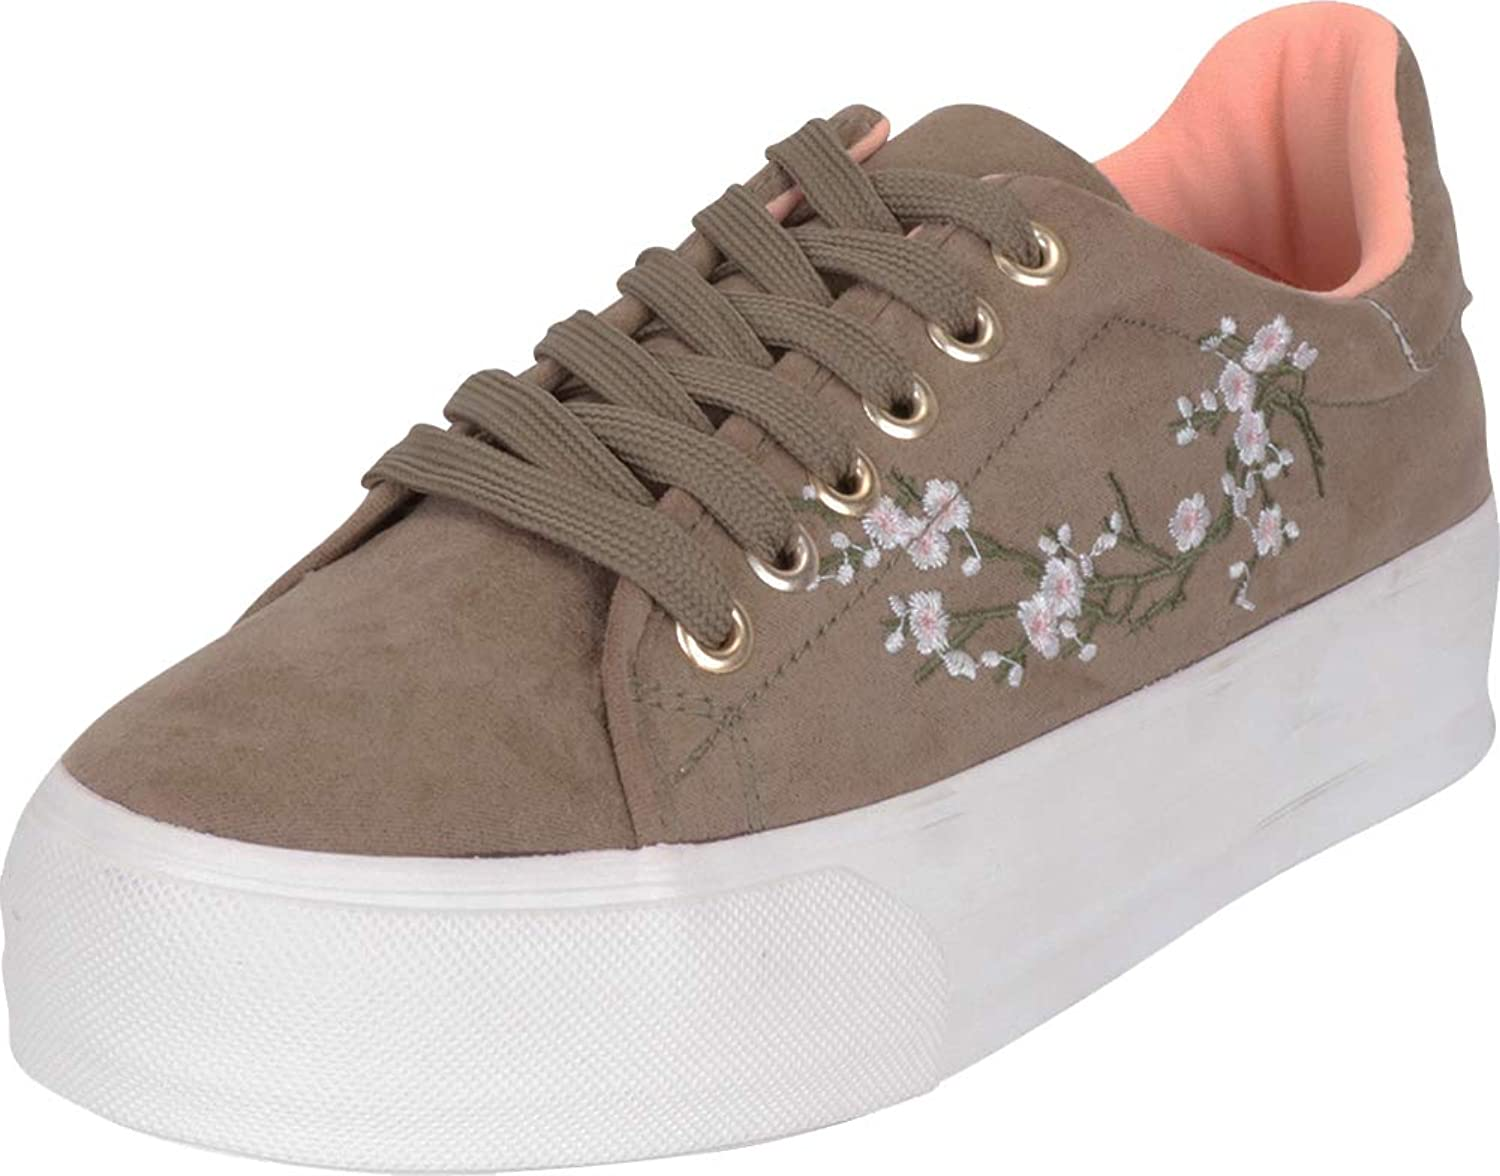 Cambridge Select Women's Low Top Floral Cherry Blossom Embroidered Platform Flatform Fashion Sneaker